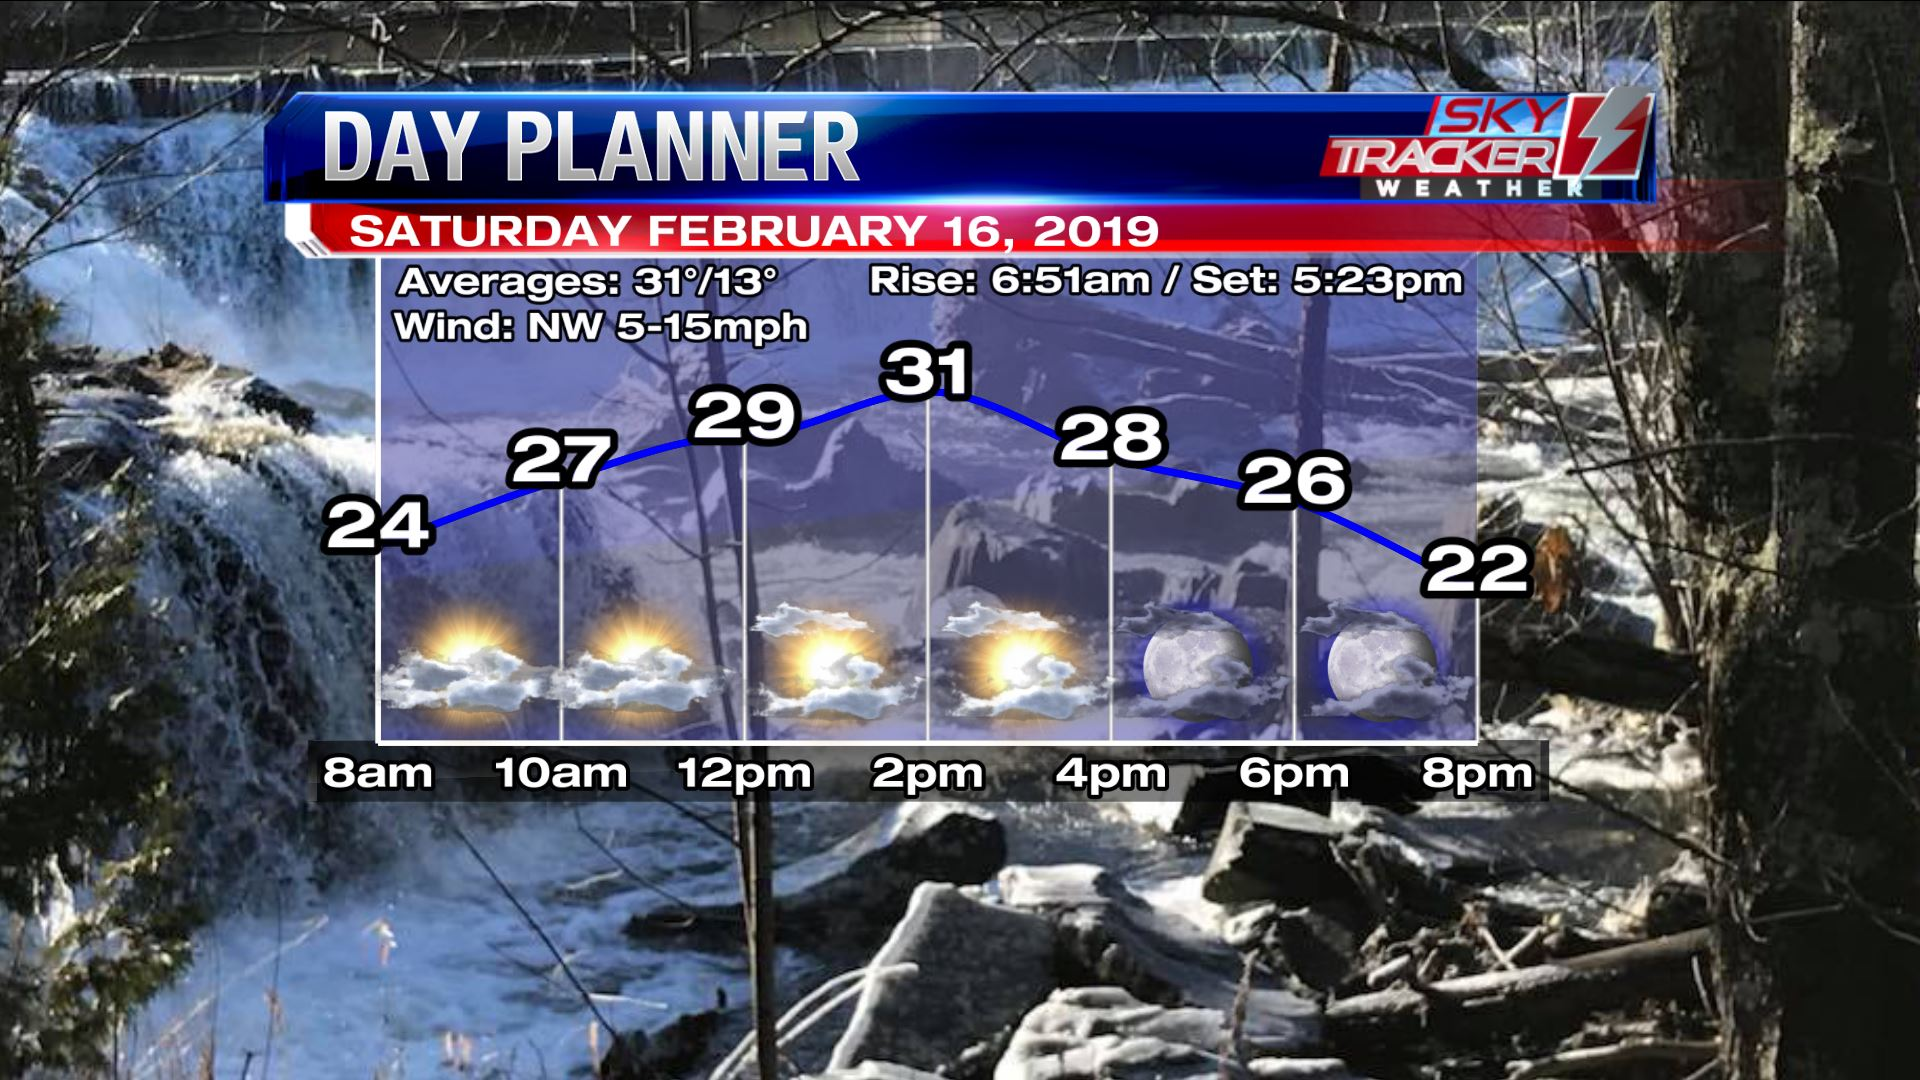 Planner for Saturday Feb 16 2019